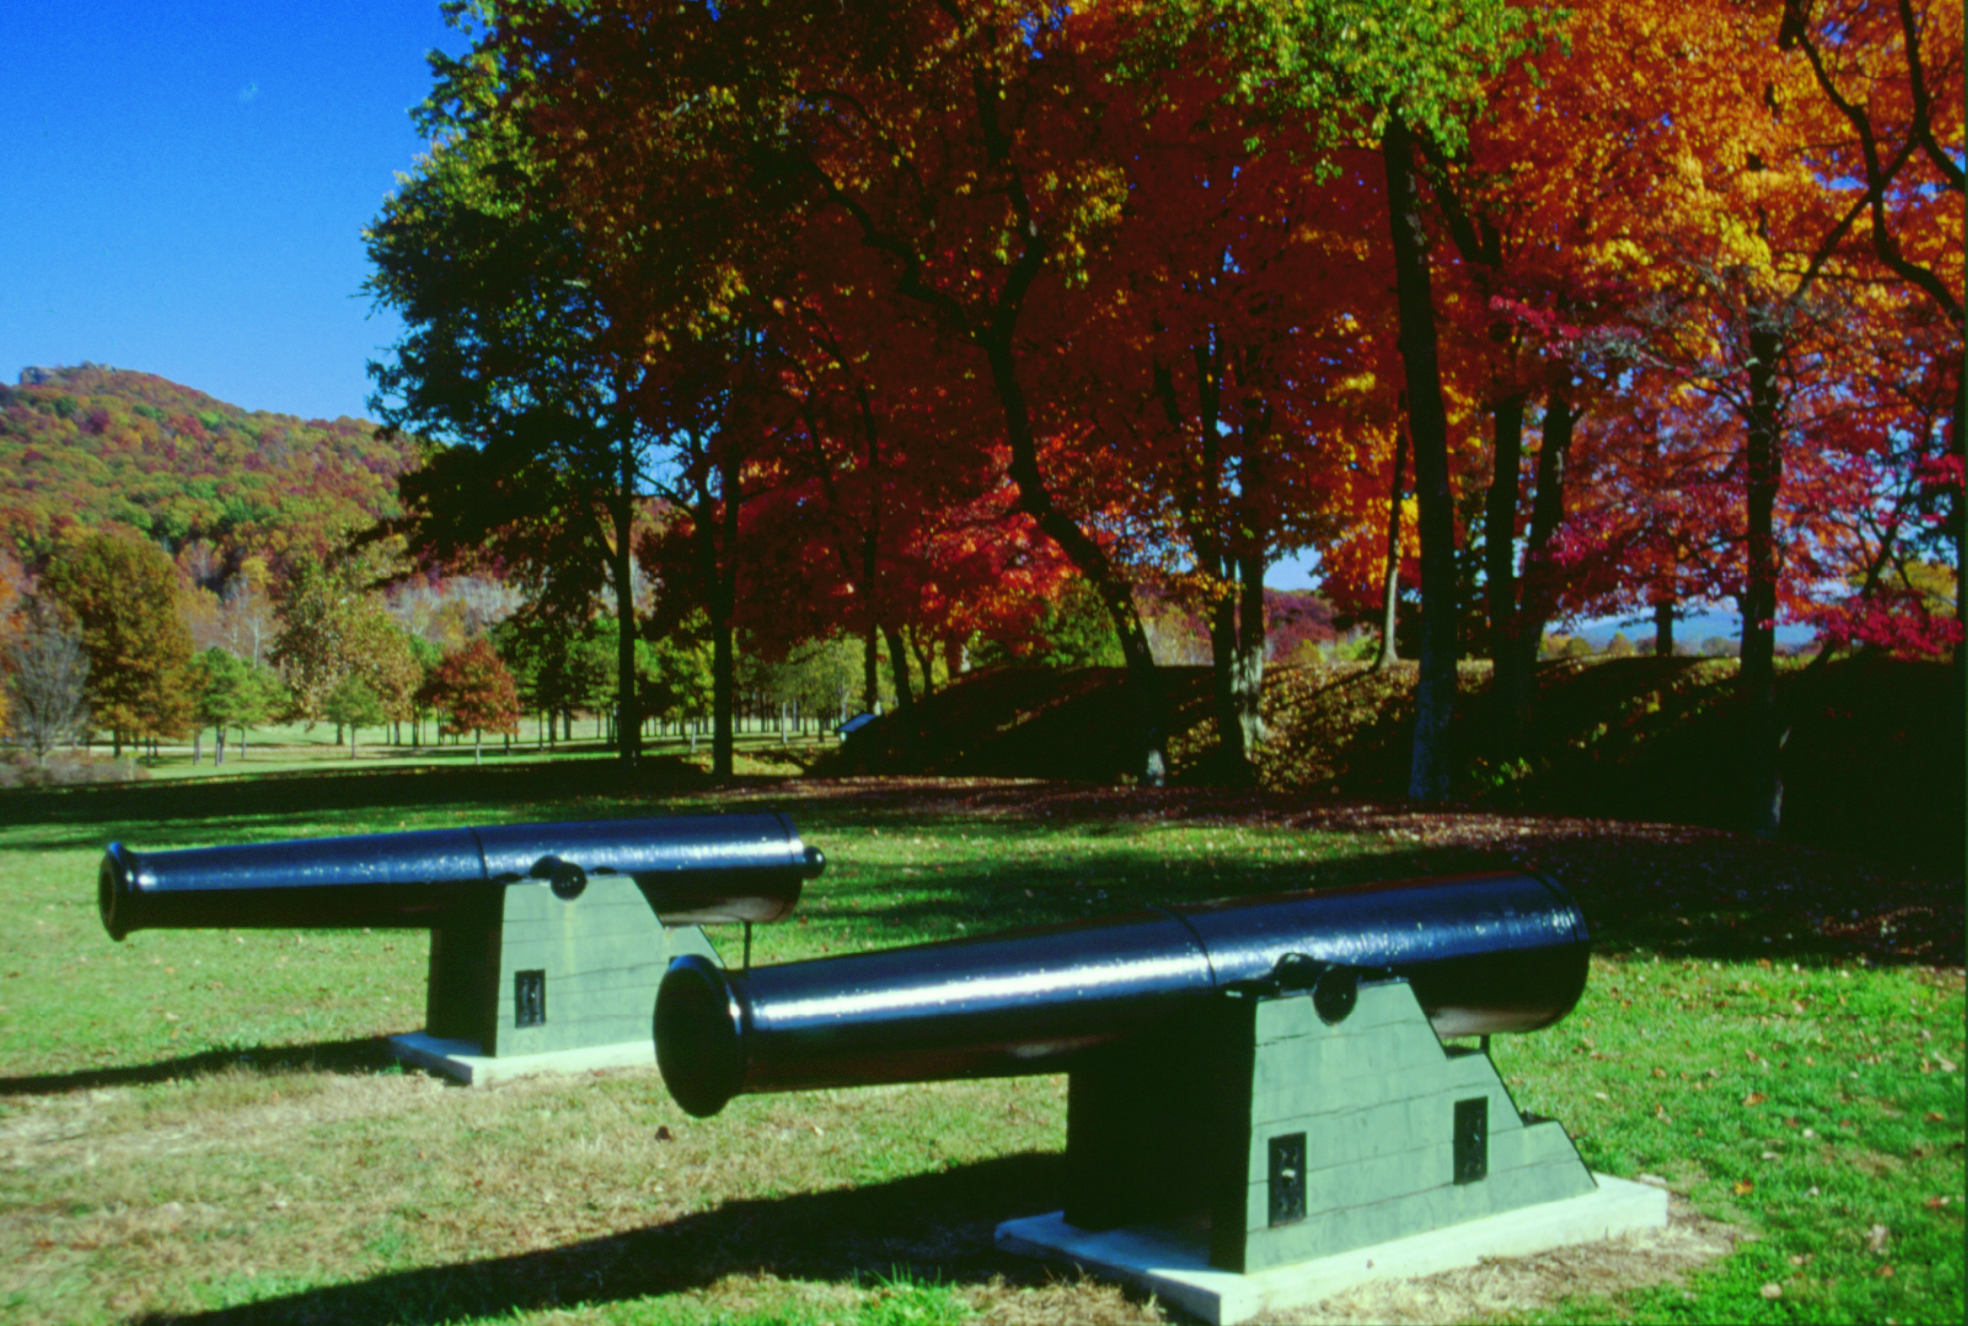 Two canons on display near the fort